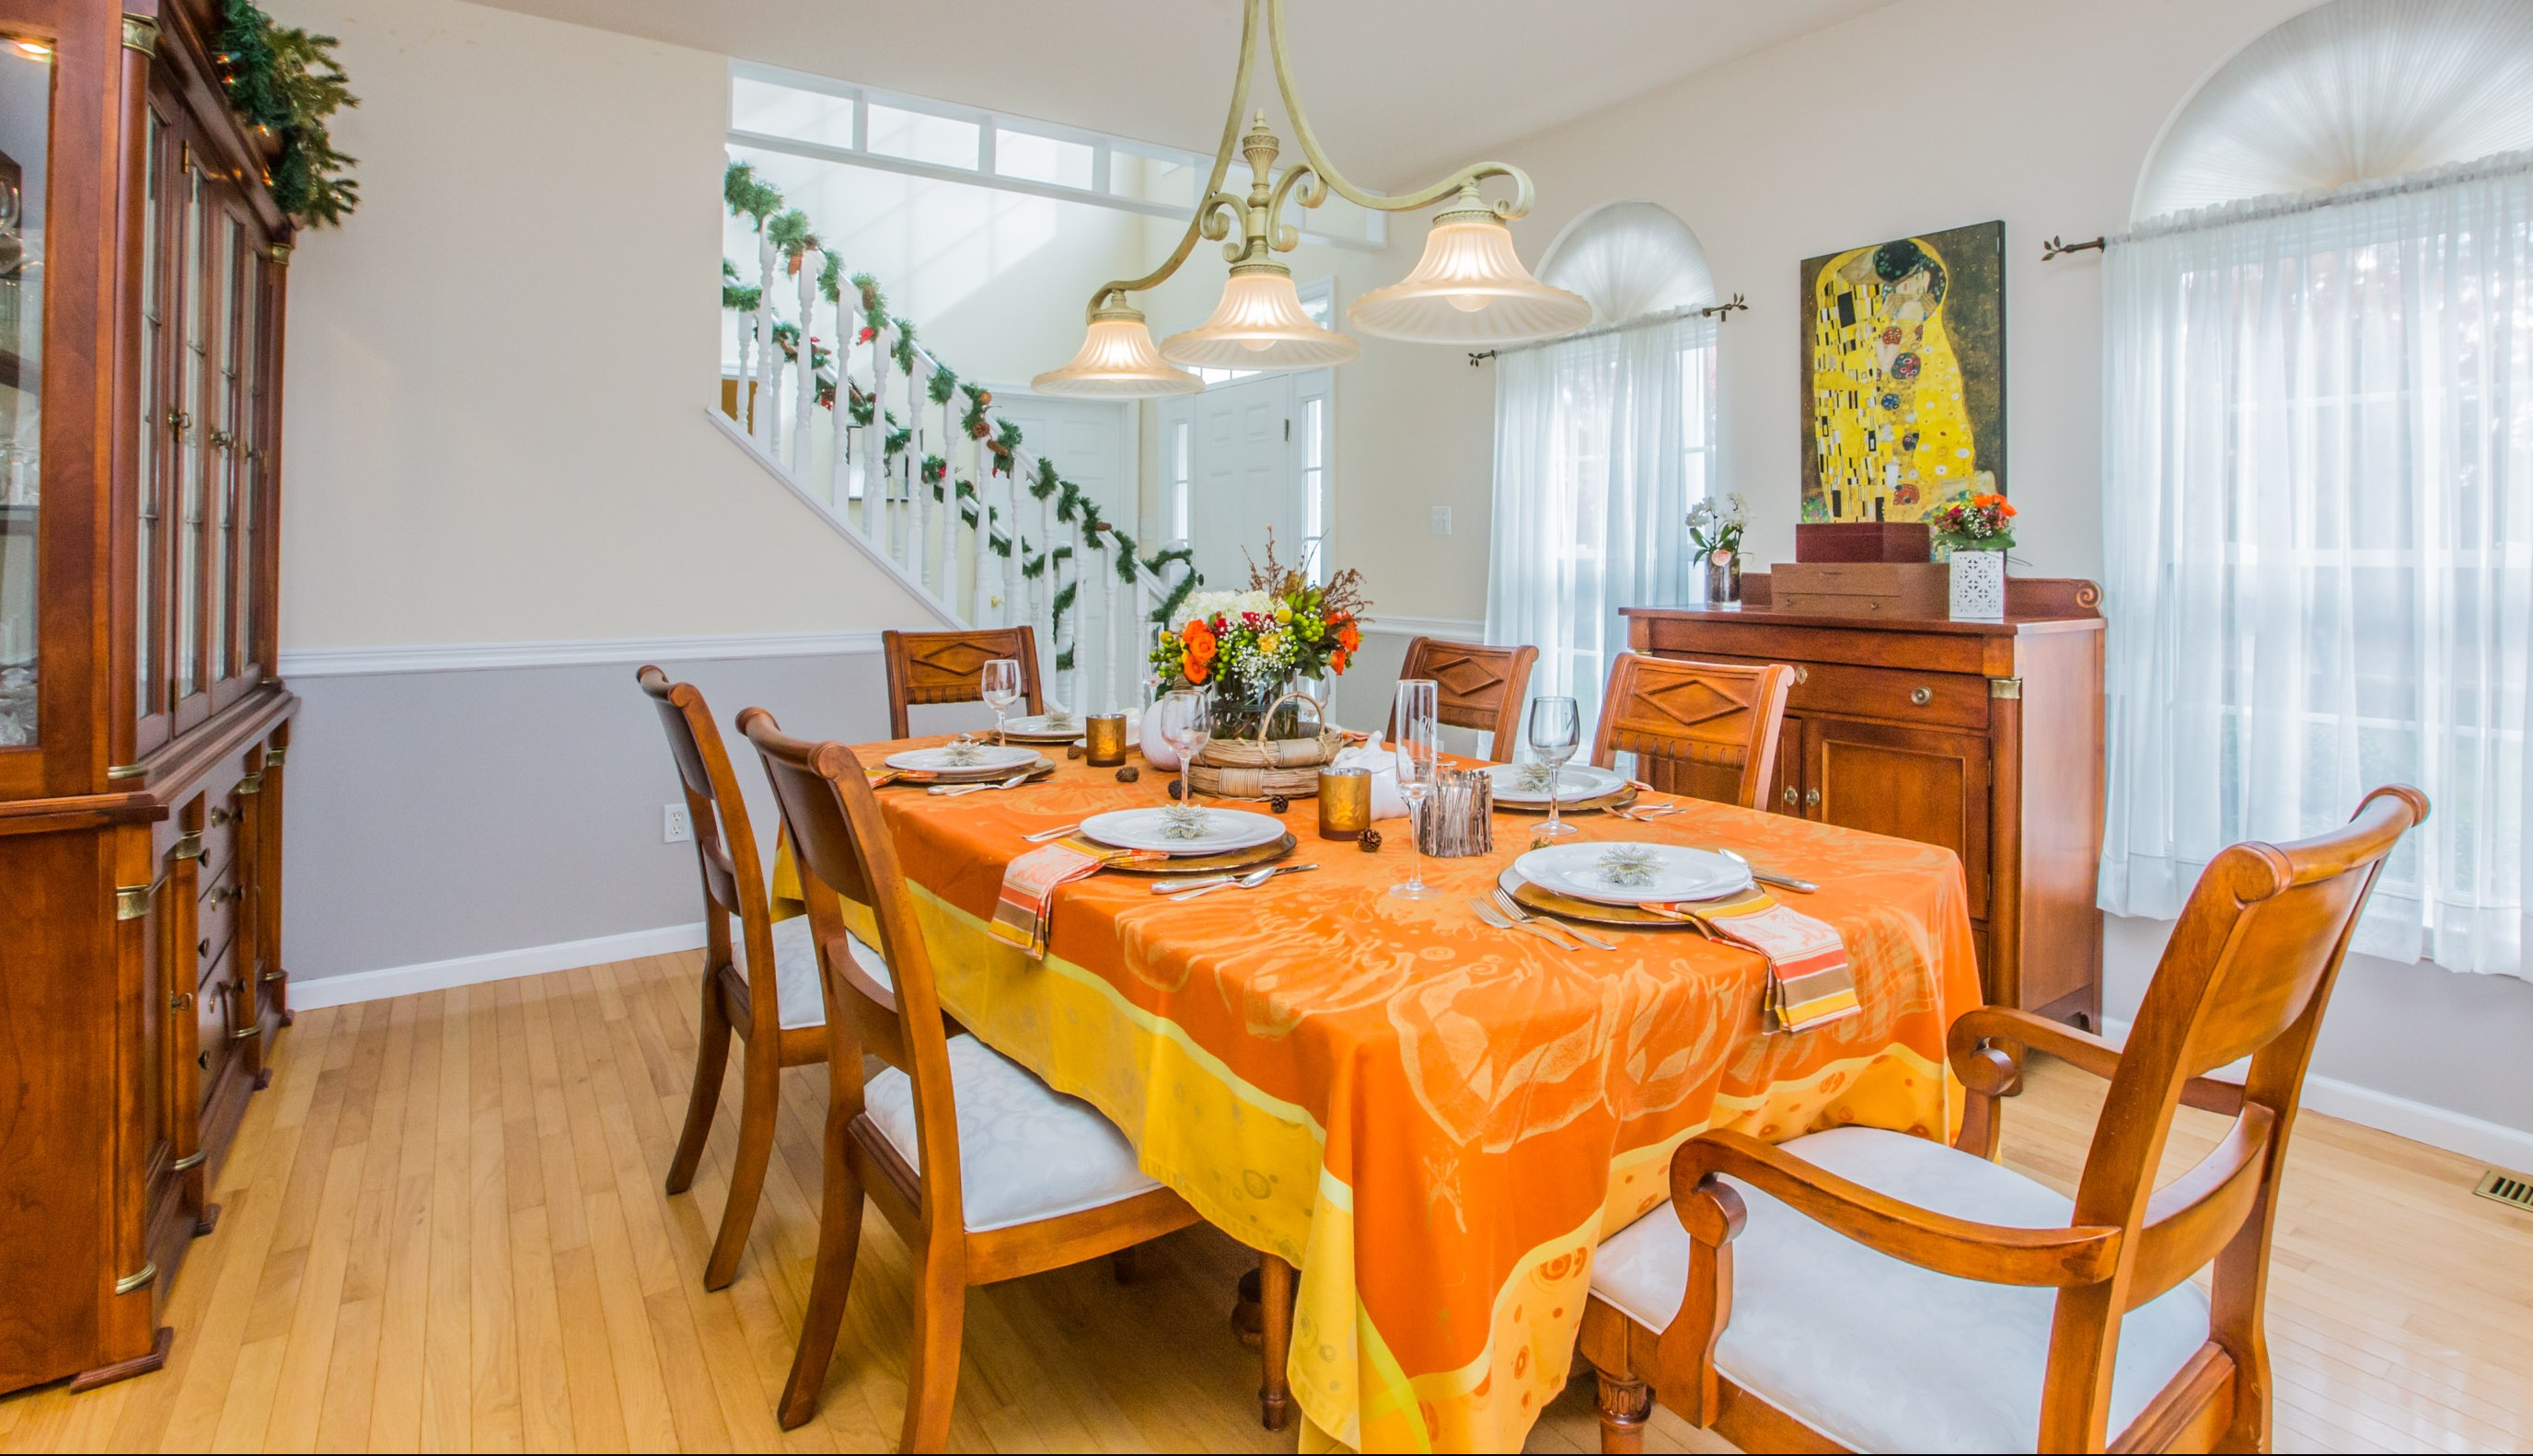 Home Decor On A Dime Thanksgiving Table Settings On A Budget Goldcoast Sir